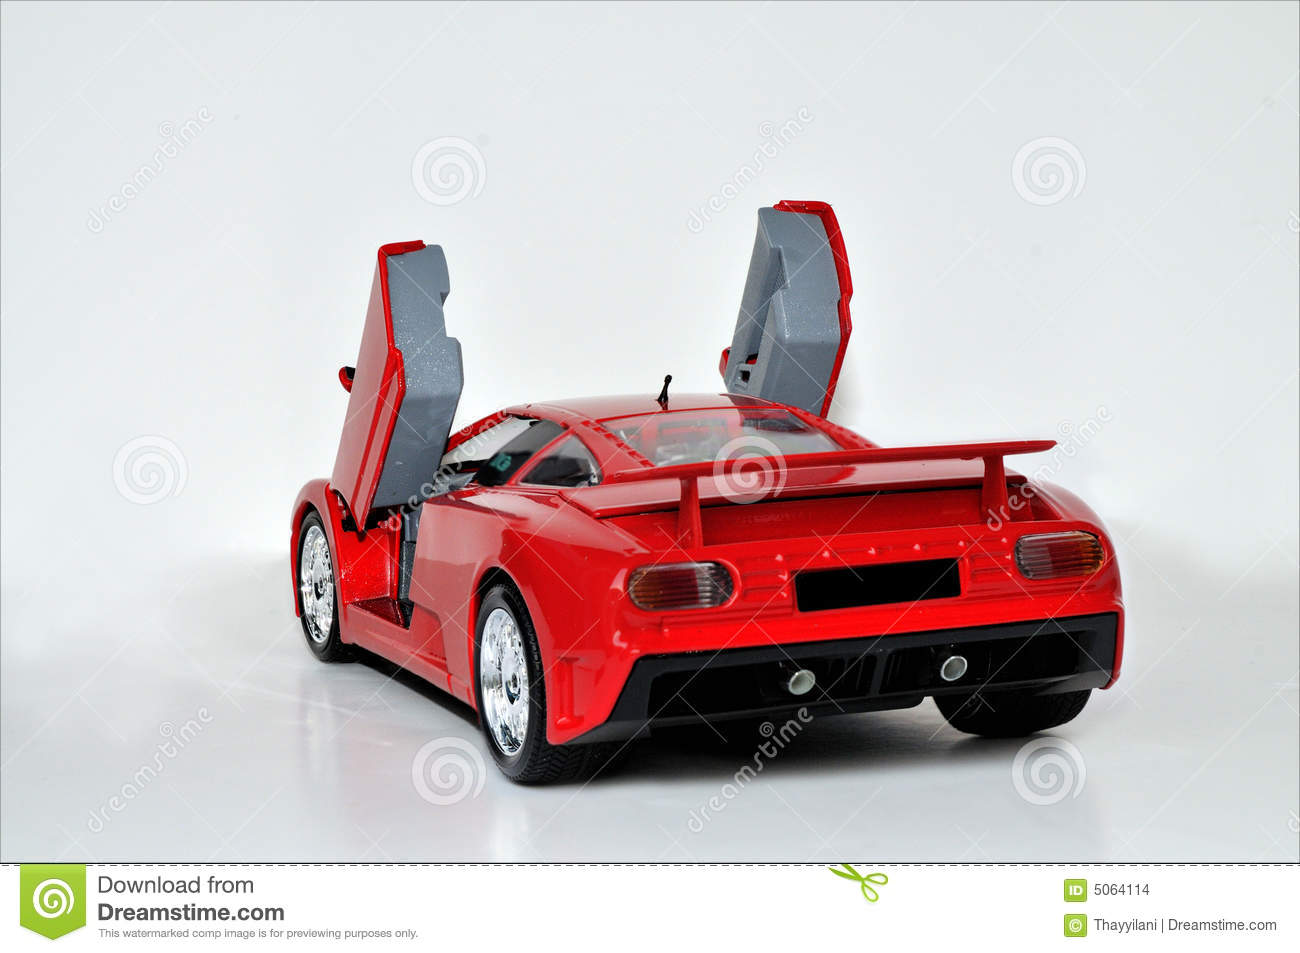 Lamborghini Car Door Open Stock Photo Image Of Illustration 5064114